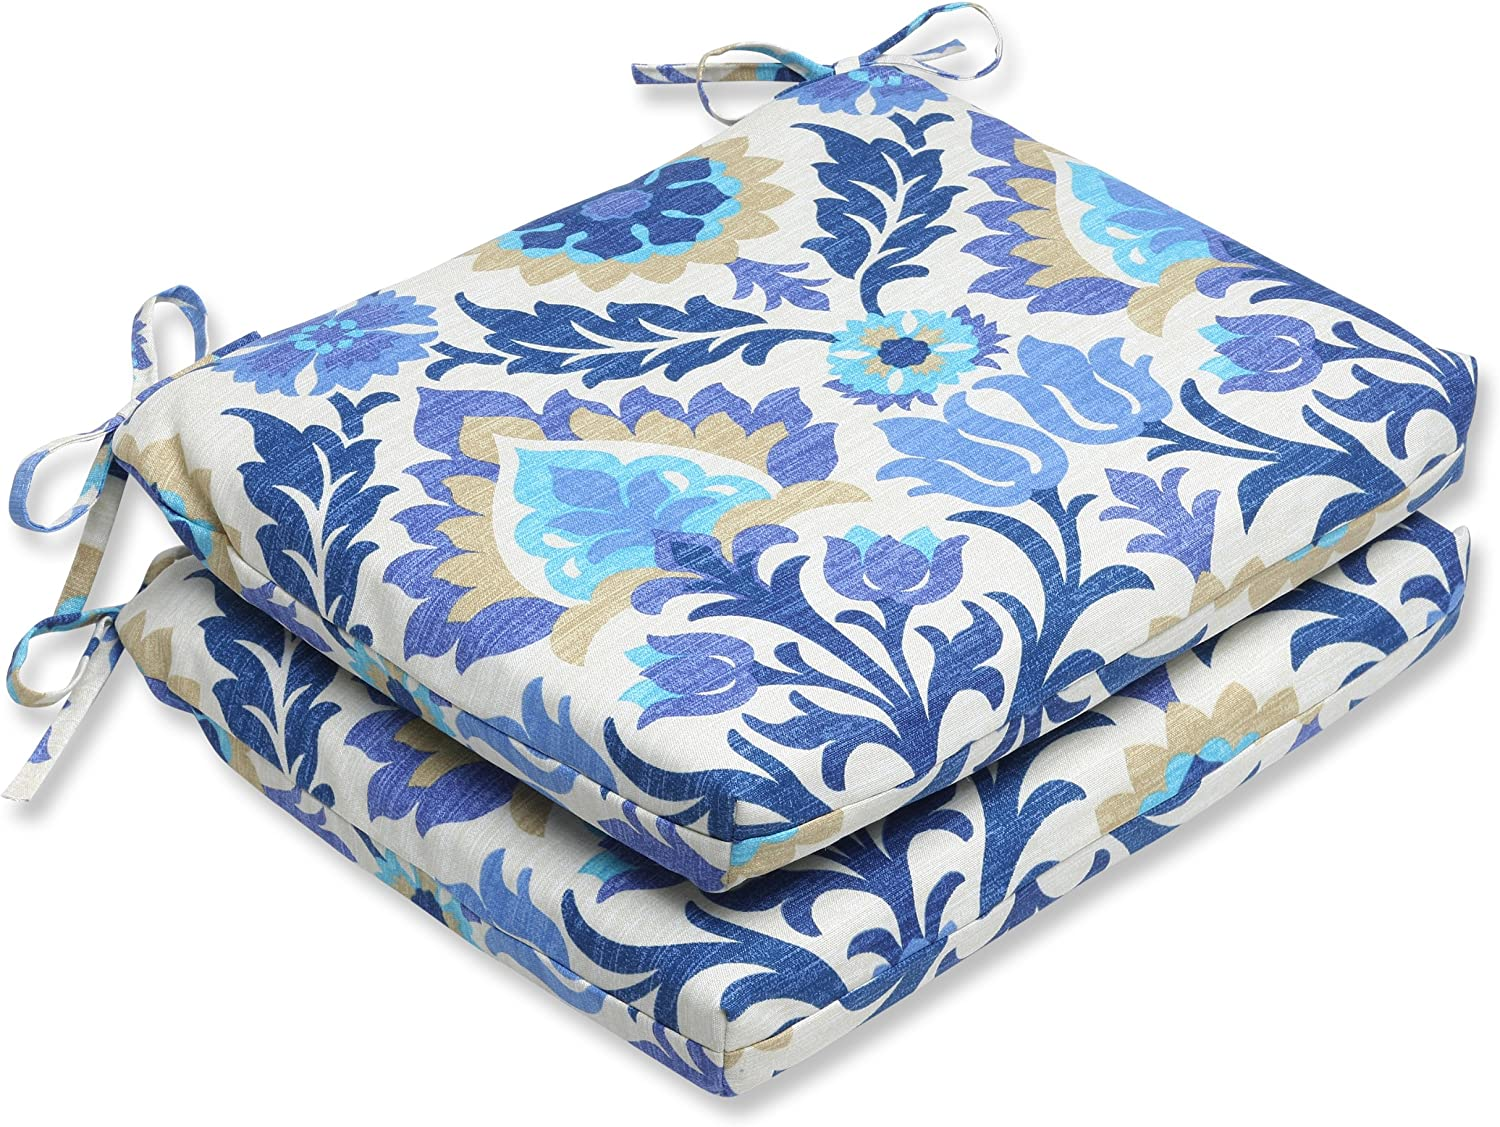 Pillow Perfect Outdoor Santa Maria Azure Squared Corners Seat Cushion, Set of 2